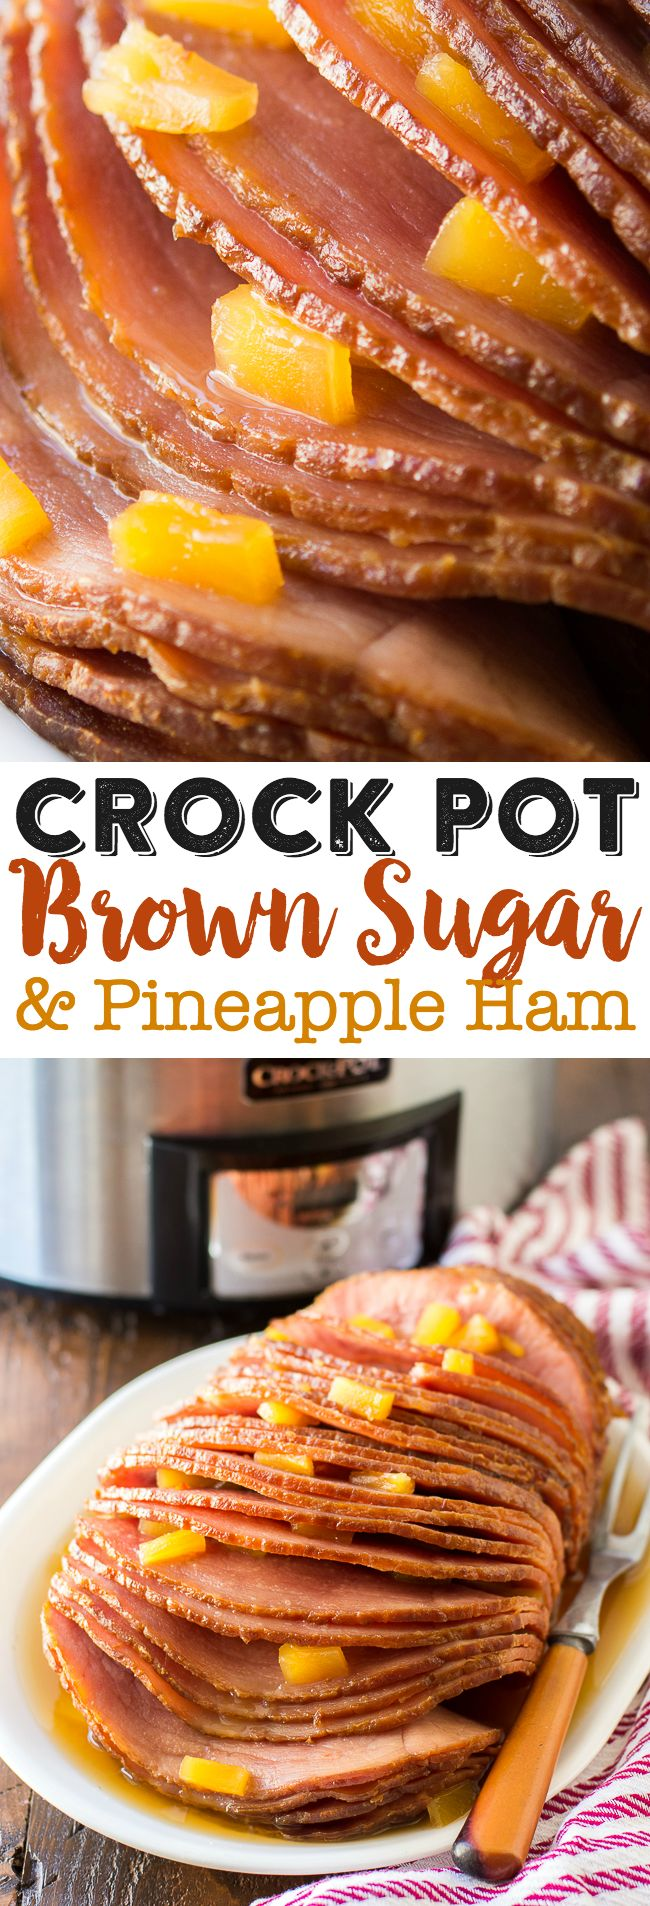 Crock Pot Brown Sugar Pineapple Ham Recipe | Slow Cooker Glazed Ham | Brown Sugar Maple Pineapple Ham | Crock Pot Spiral Cut Ham Recipe